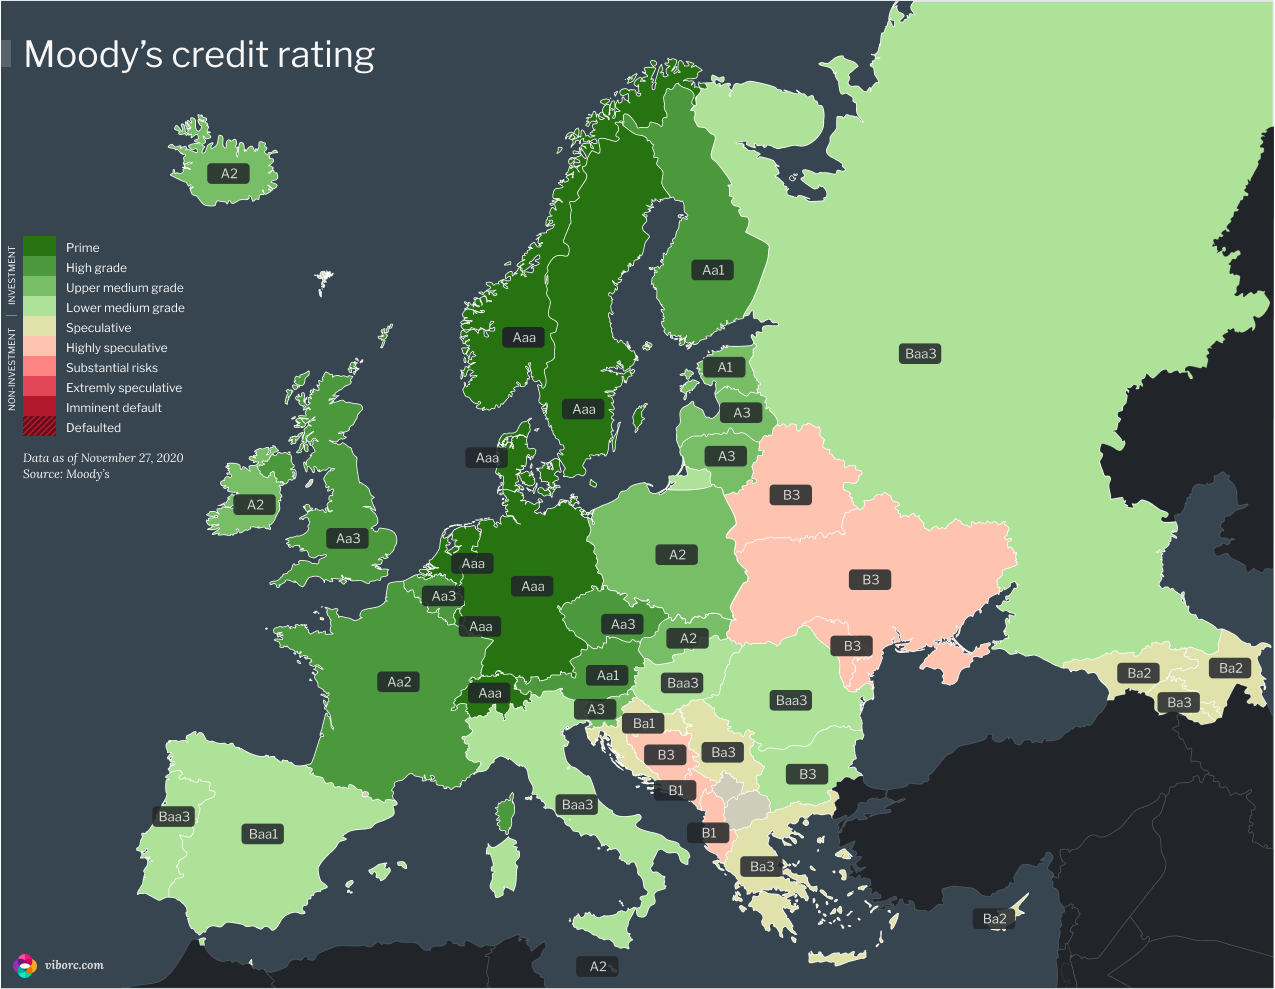 Map of Europe with the Moody's credit ratings in 2020